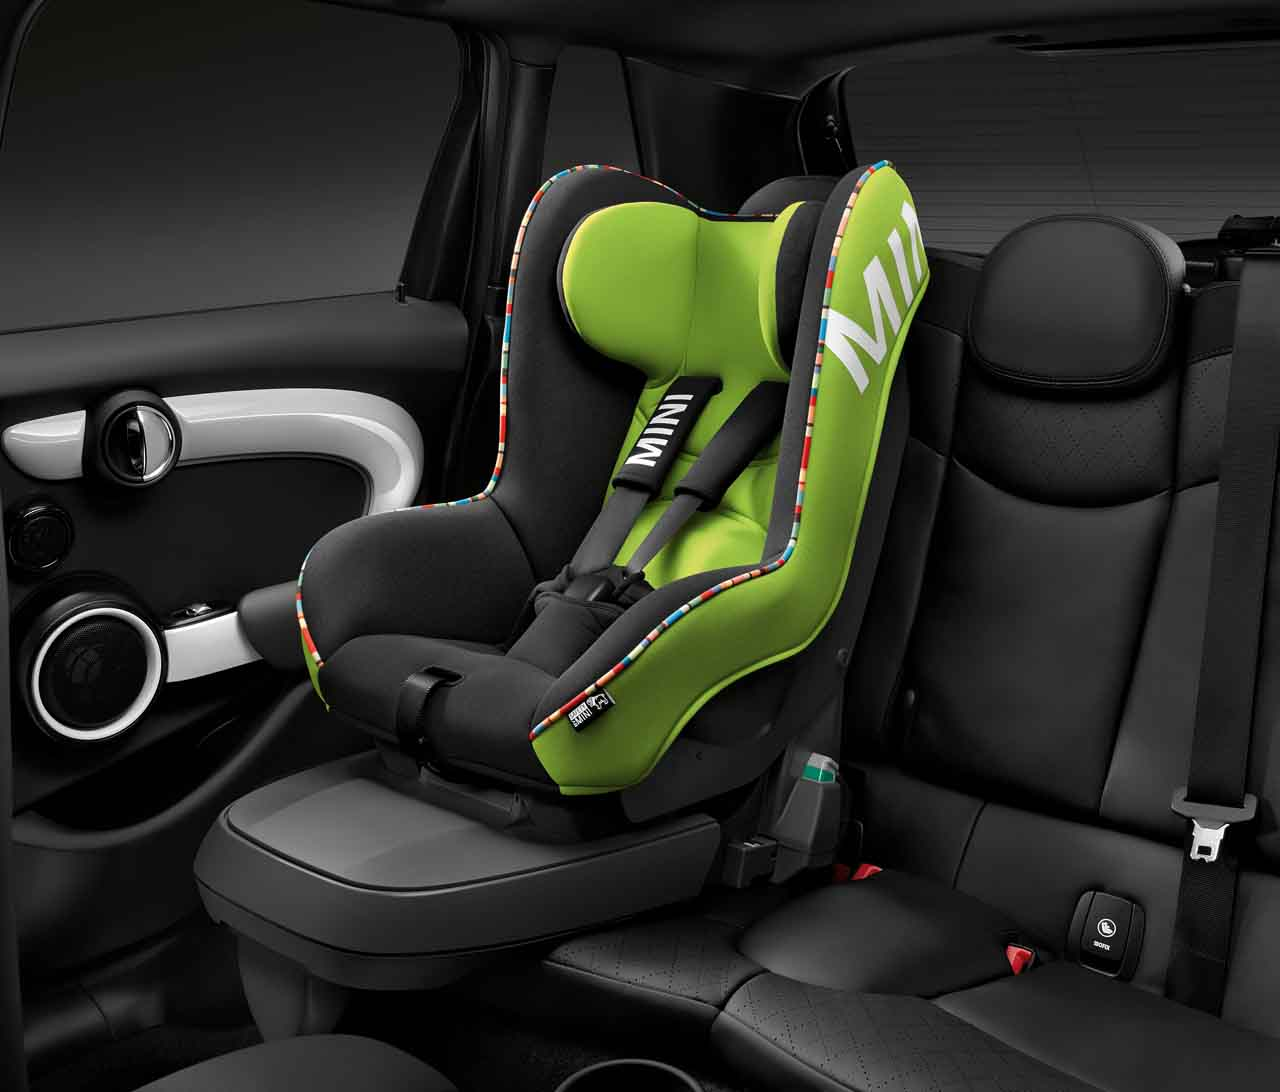 mini genuine baby child kids safety isofix car seat 1 vivid green 82222348237 ebay. Black Bedroom Furniture Sets. Home Design Ideas